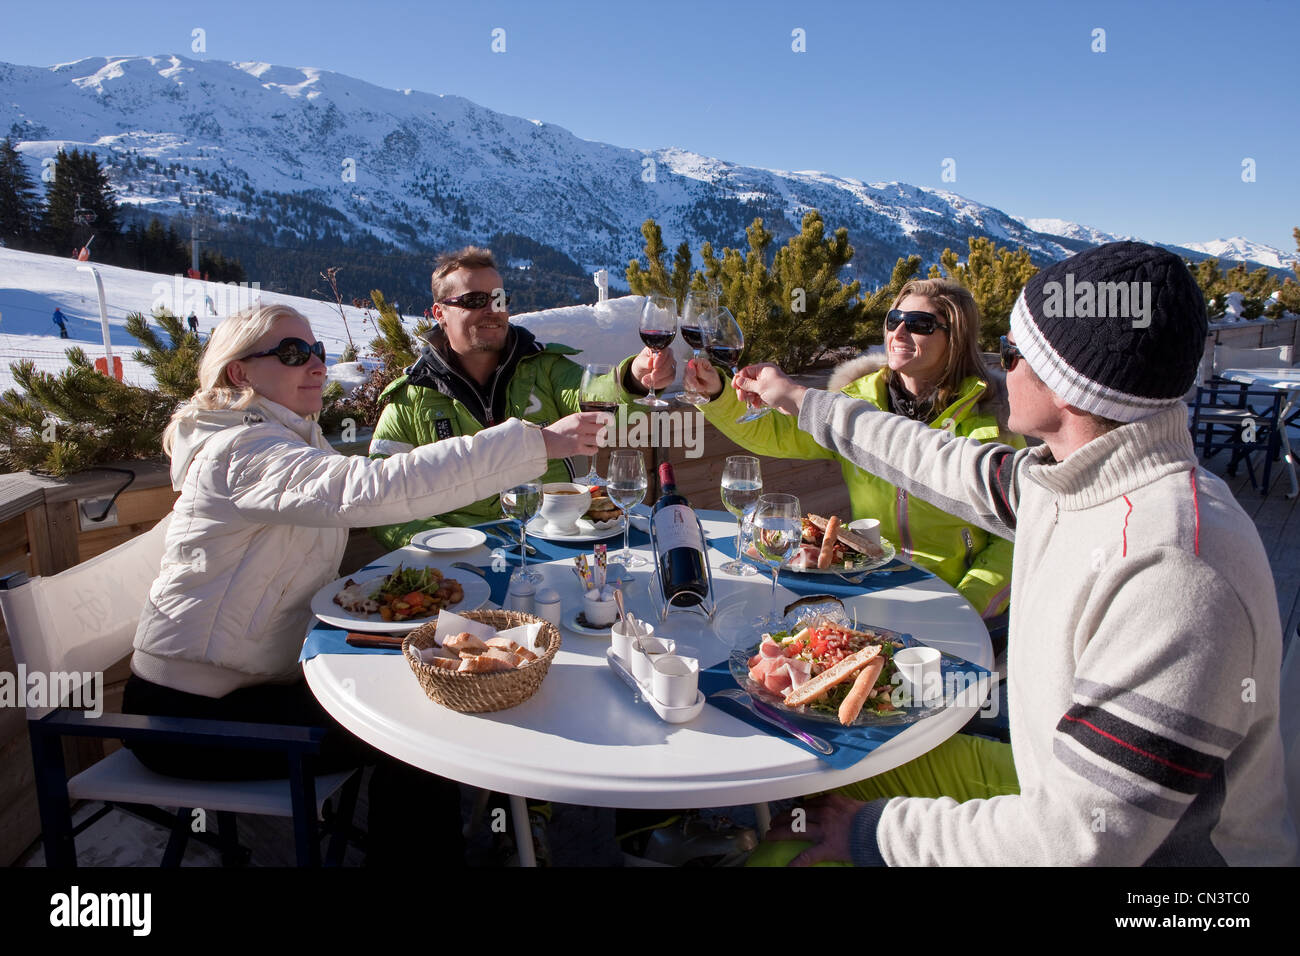 France, Savoie, Méribel, ski slopes of 3 valleys, couples with the winter sports on the terrace of the restaurant - Stock Image